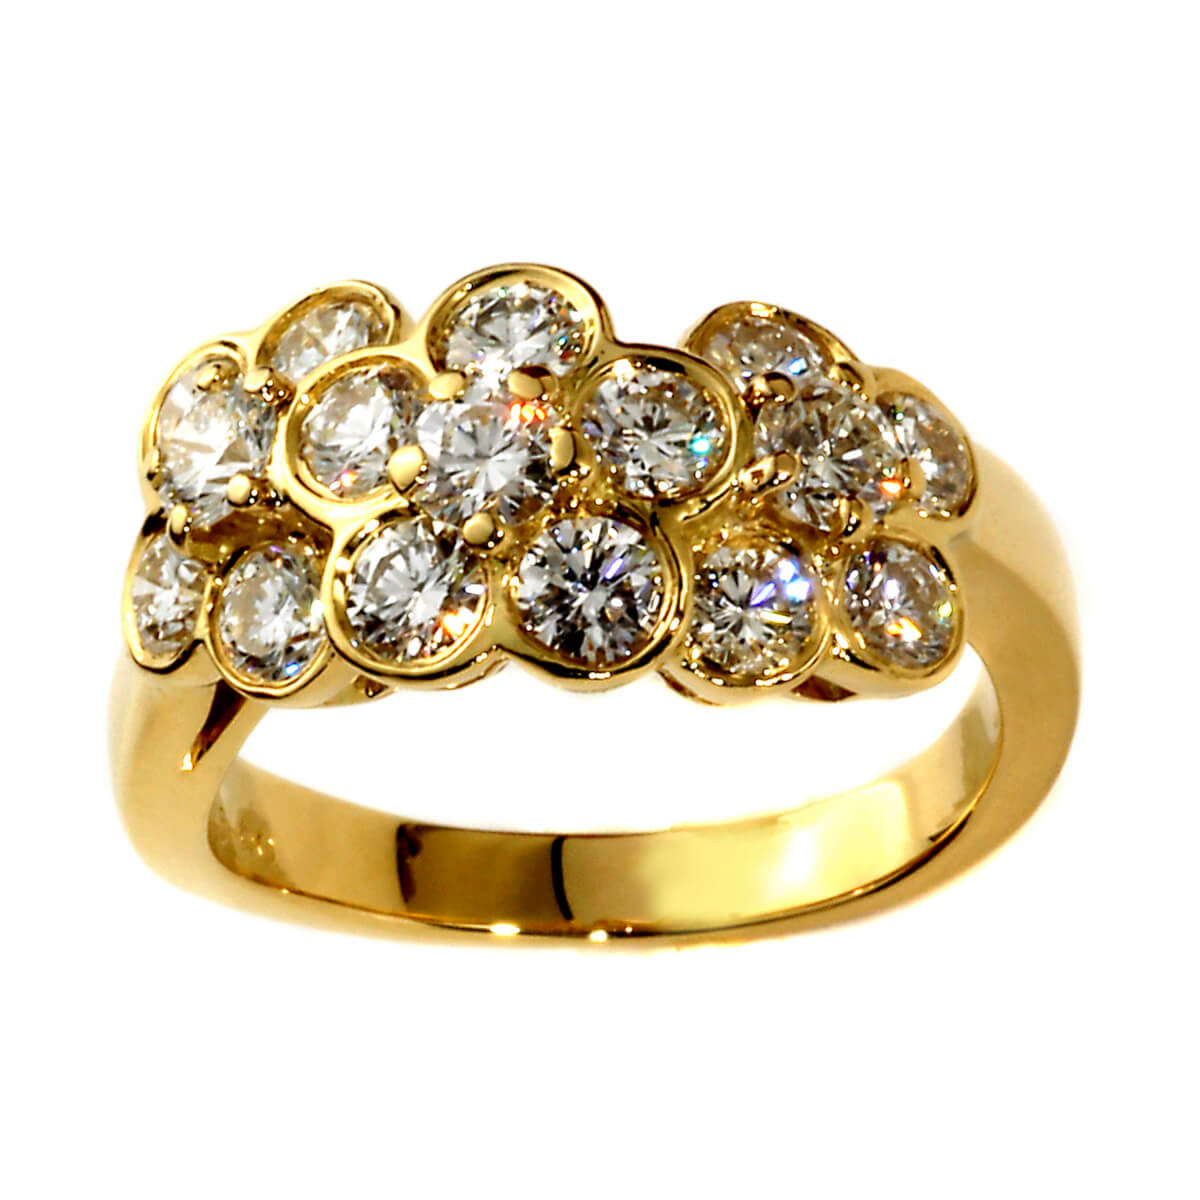 Van Cleef and Arpels Fleurette Diamond Gold Ring